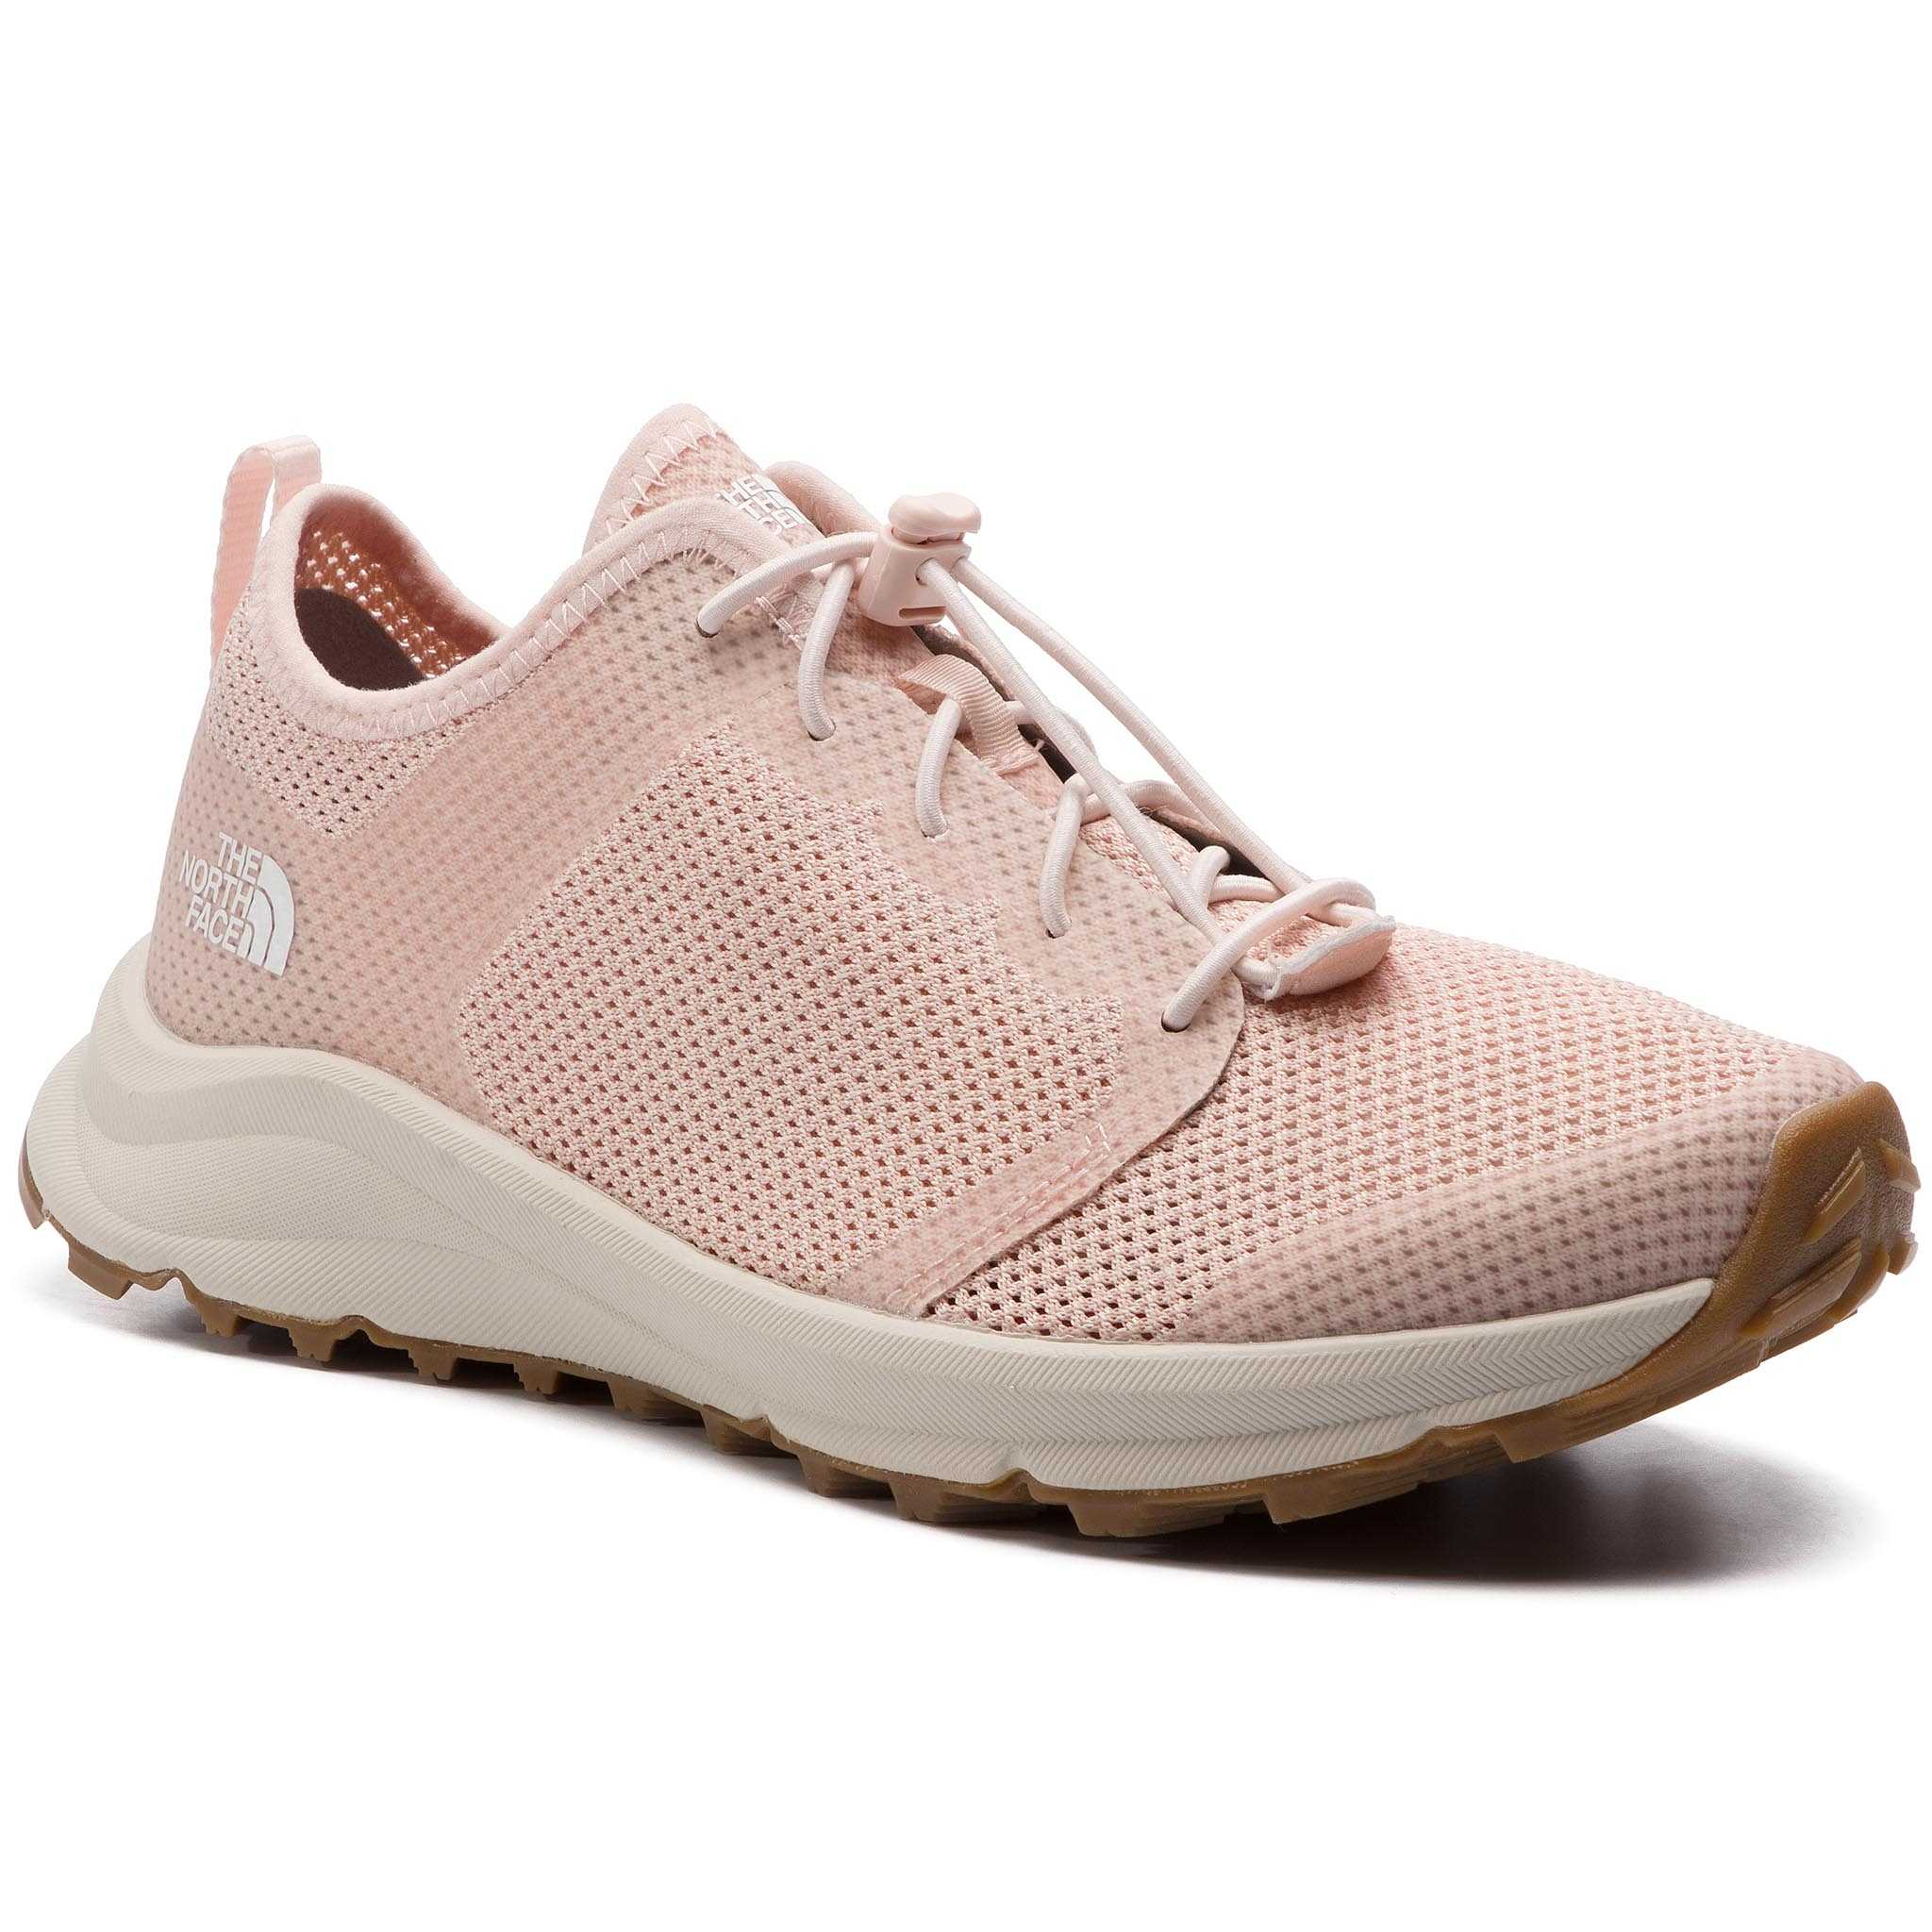 The North Face Trekking-skor THE NORTH FACE - Litewave Flow Lace II T93RDUC8S Pink Salt/Vintage White